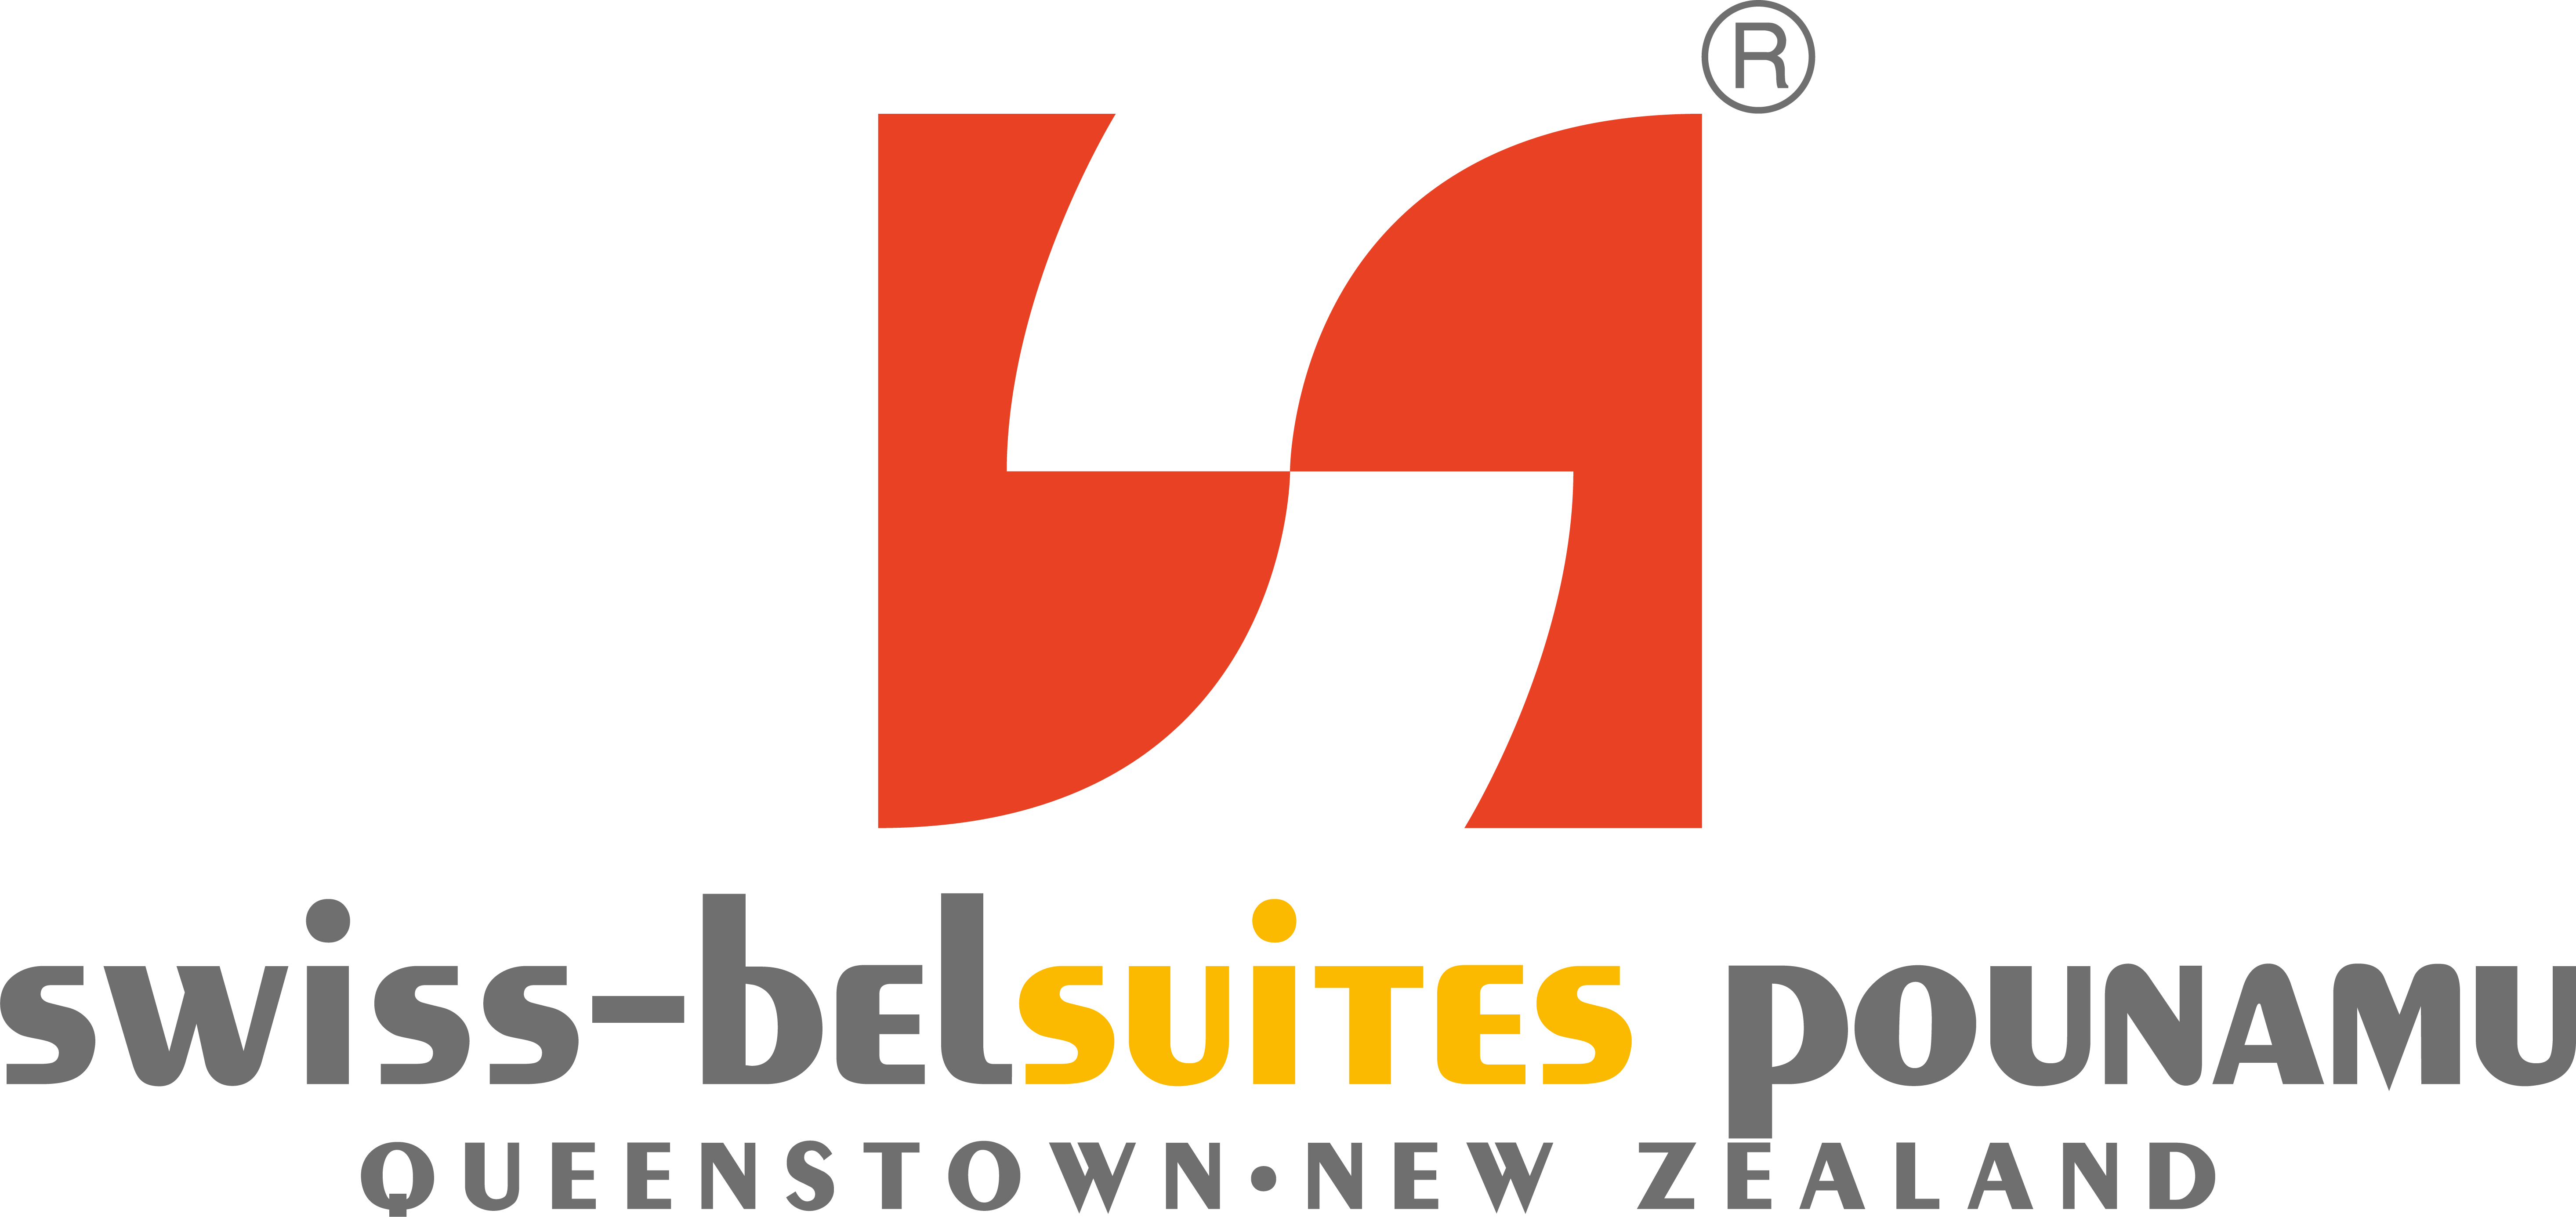 Swiss-Belsuites Pounamu, Queenstown, New Zealand